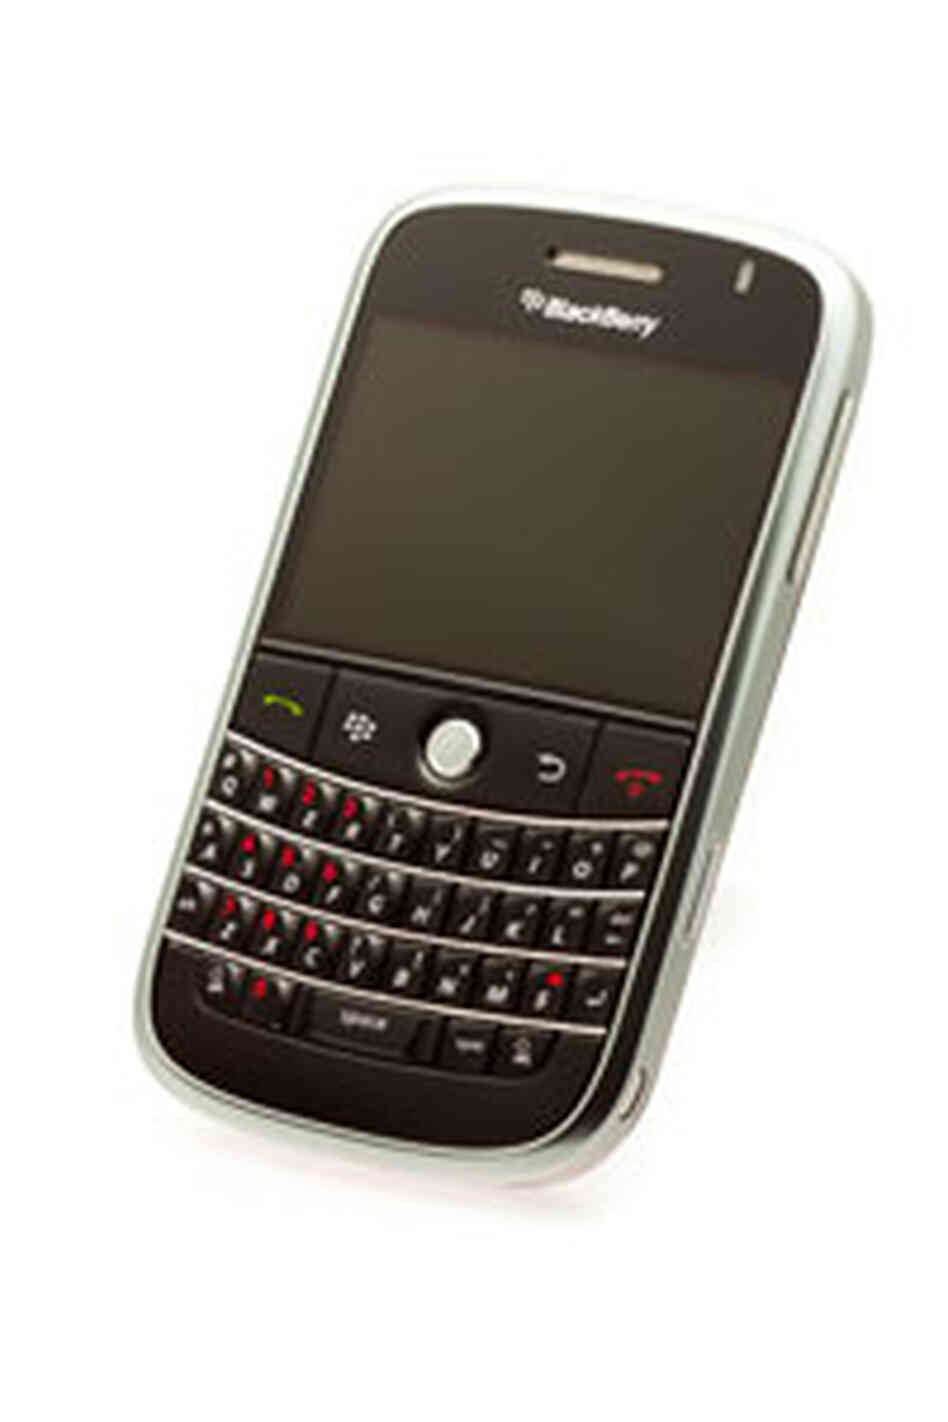 An older model BlackBerry.